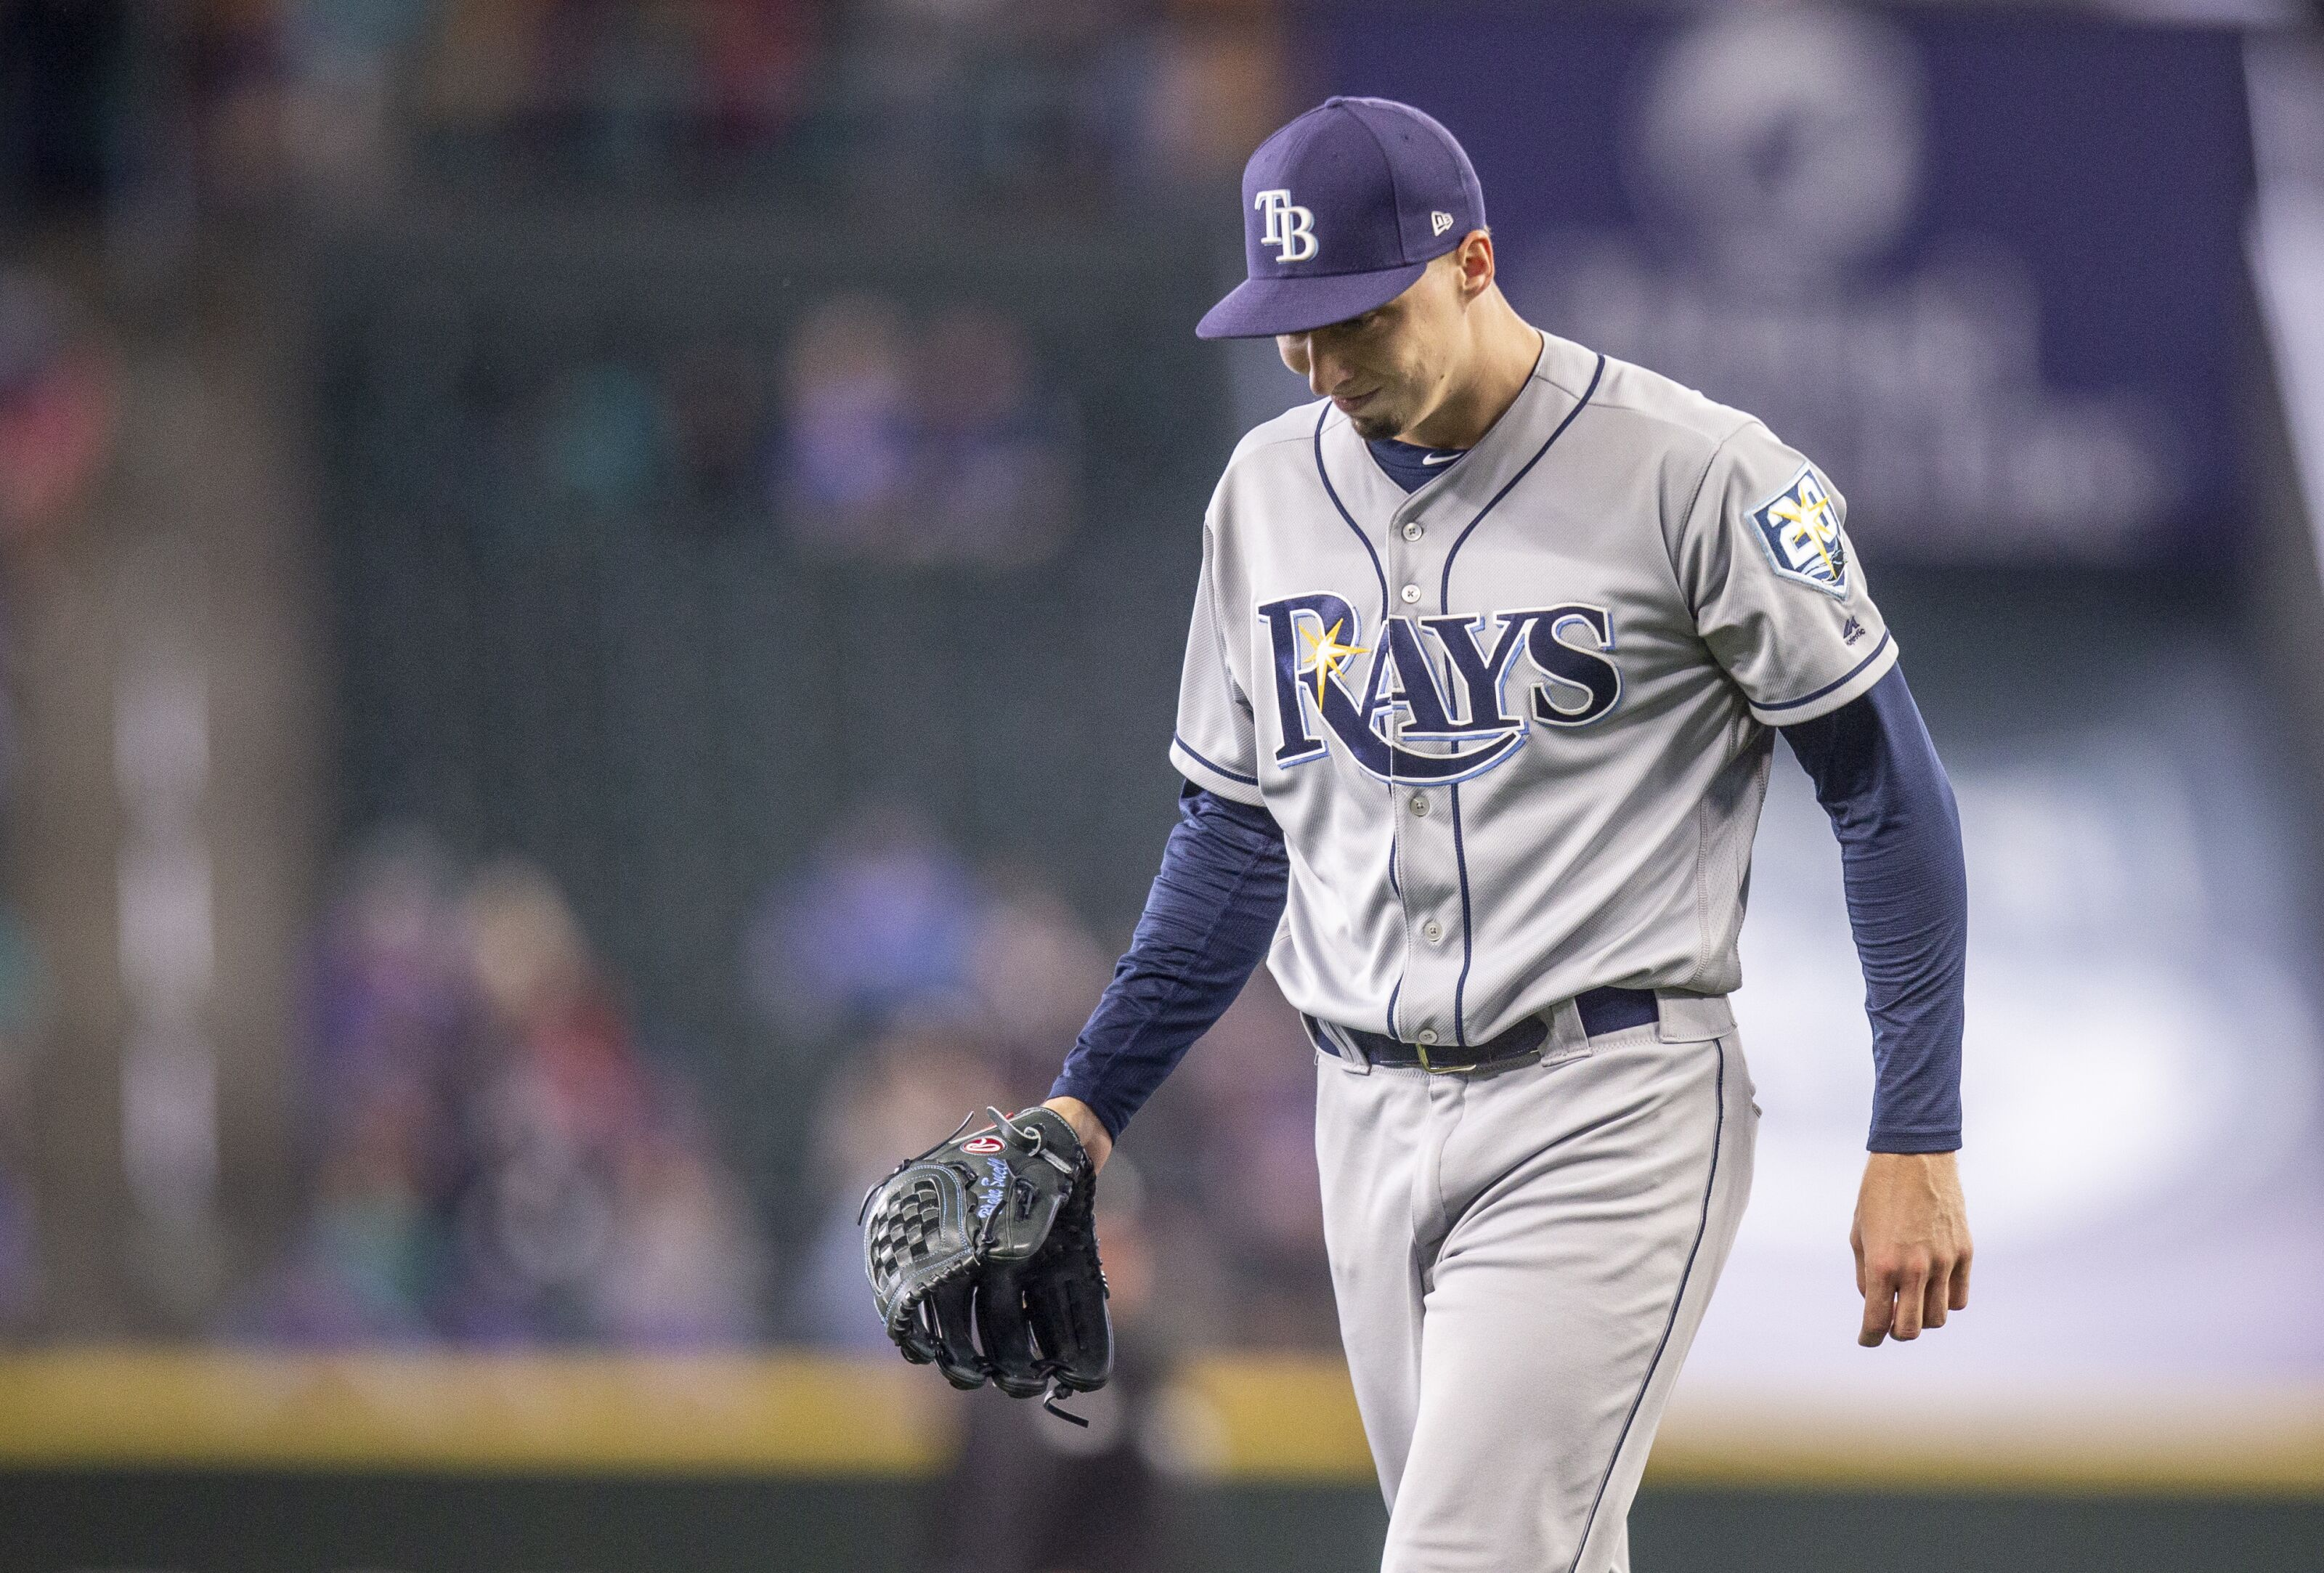 SEATTLE, WA - JUNE 3: Starting pitcher Blake Snell #4 of the Tampa Bay Rays walks off the field after pitching the second inning of a game against the Seattle Mariners at Safeco Field on June 3, 2018 in Seattle, Washington. The Mariners won 2-1. (Photo by Stephen Brashear/Getty Images)